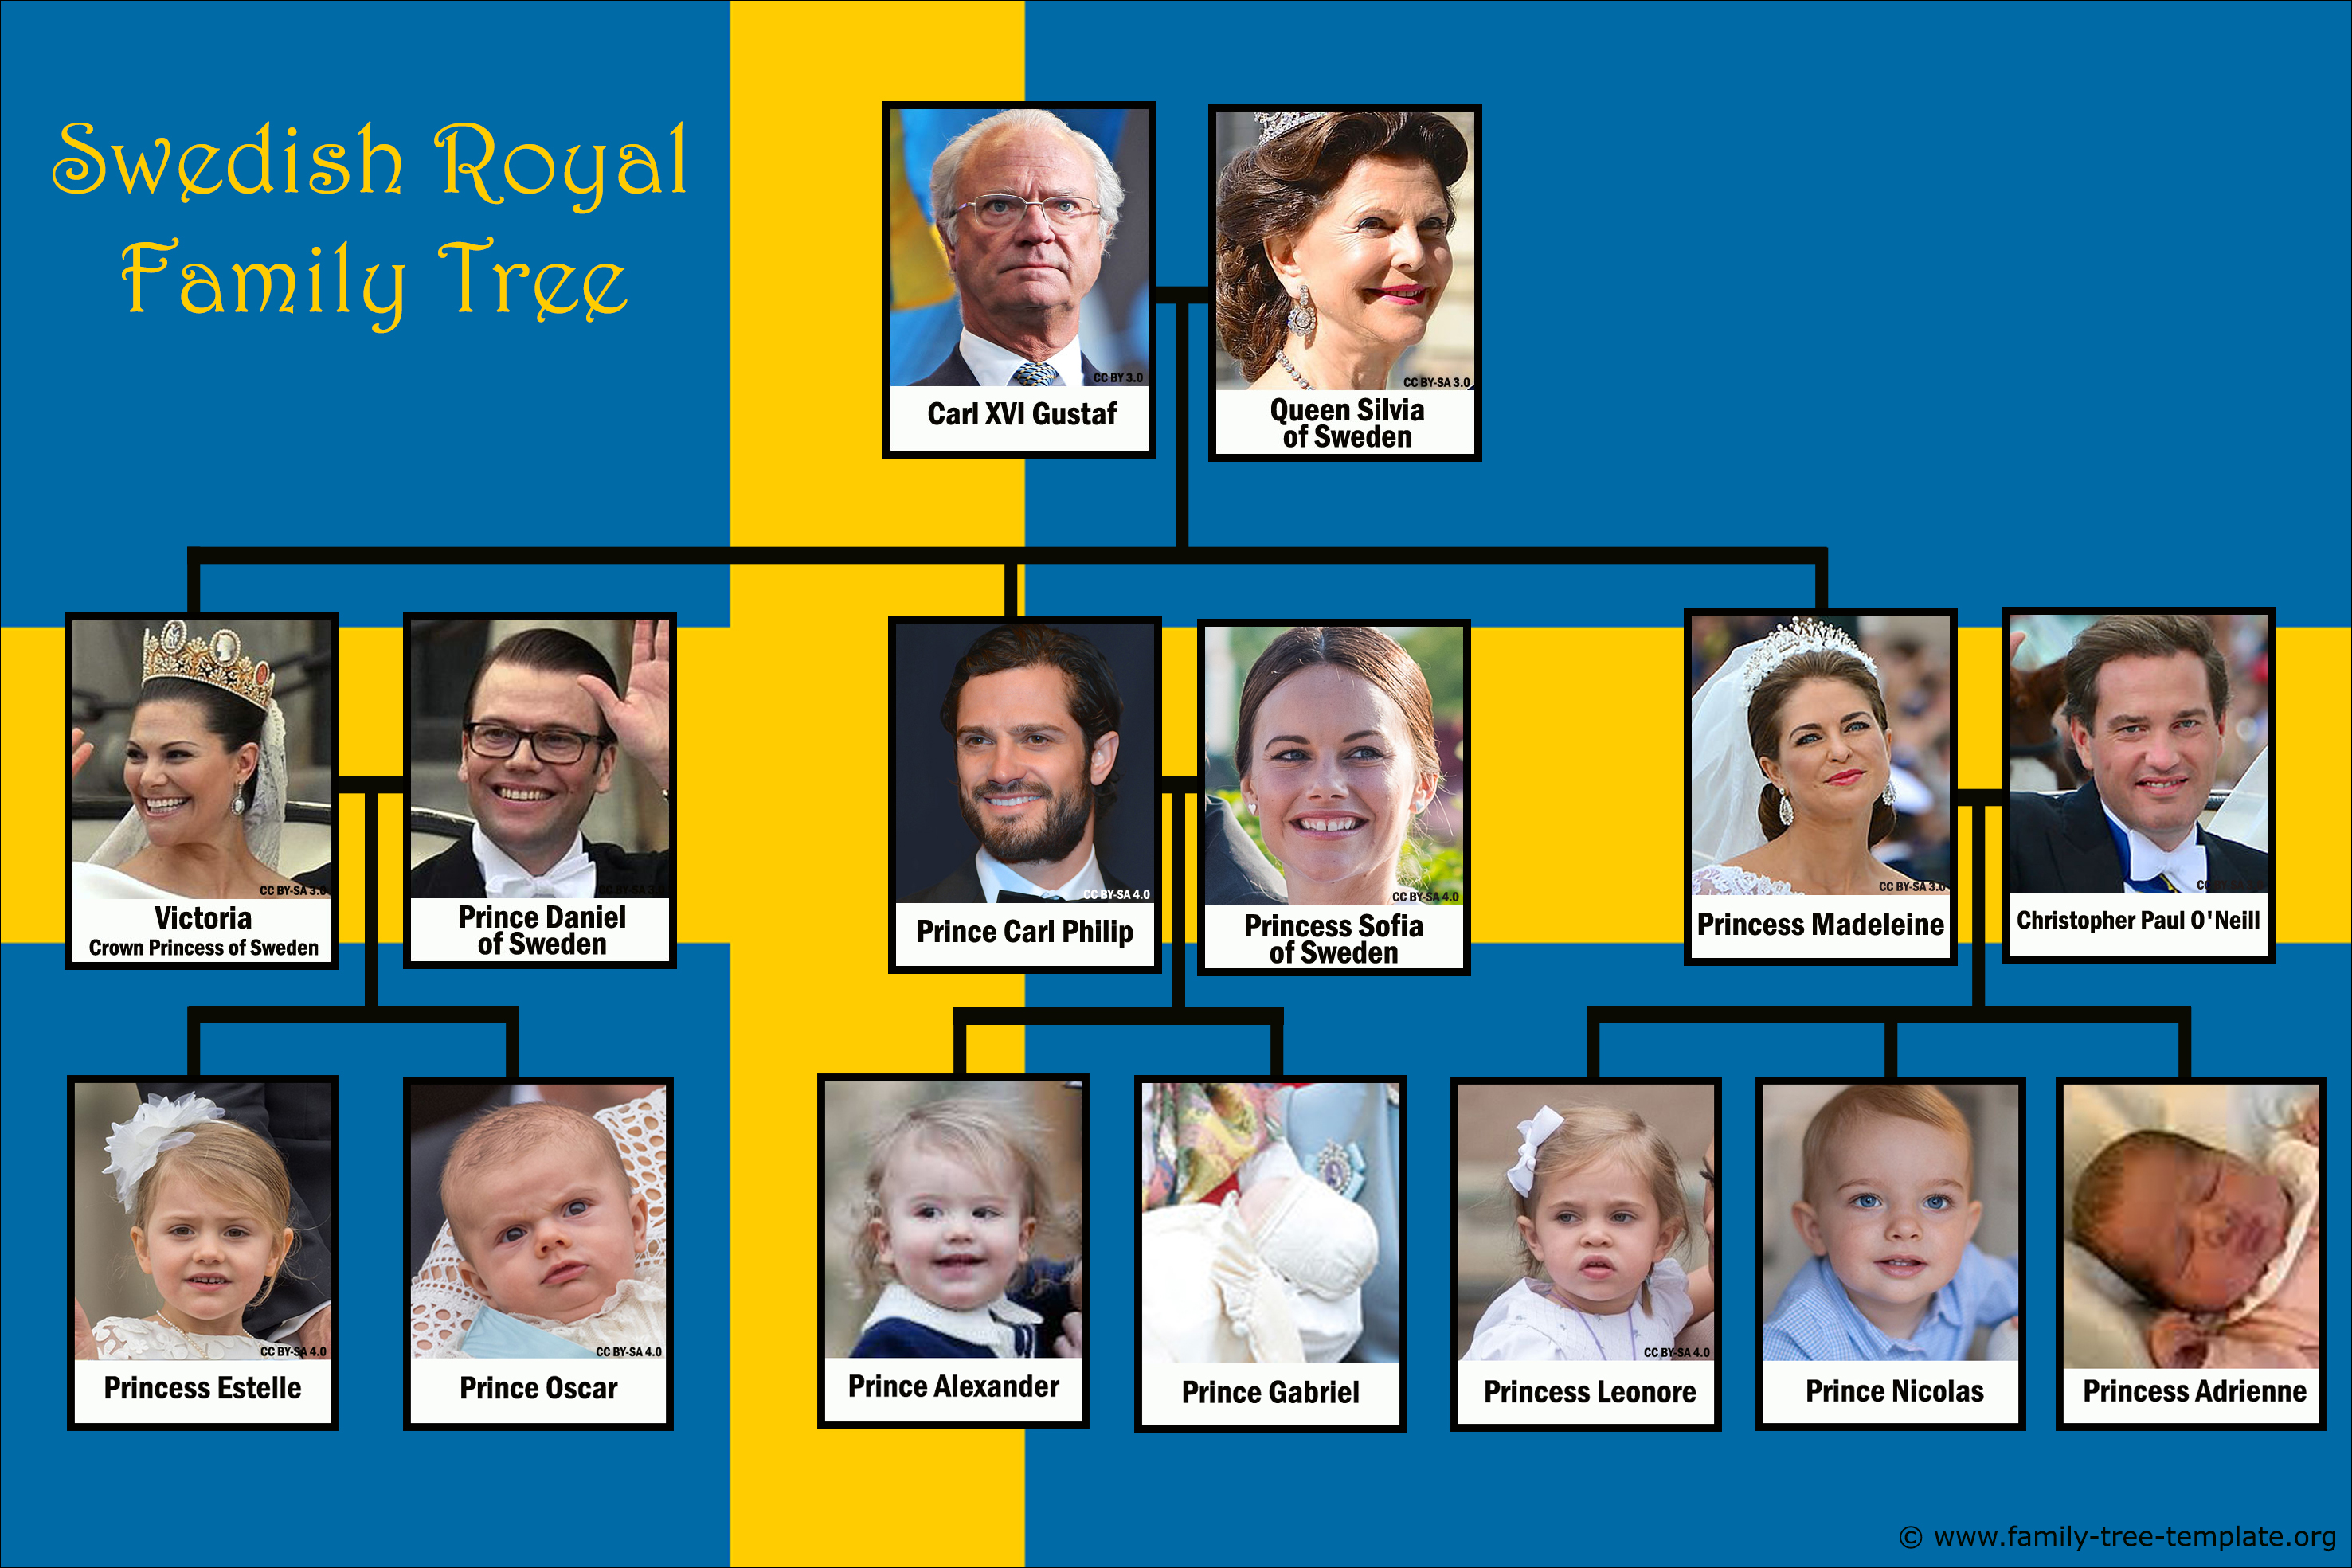 Swedish Royal family tree with King Carl XVI Gustav.